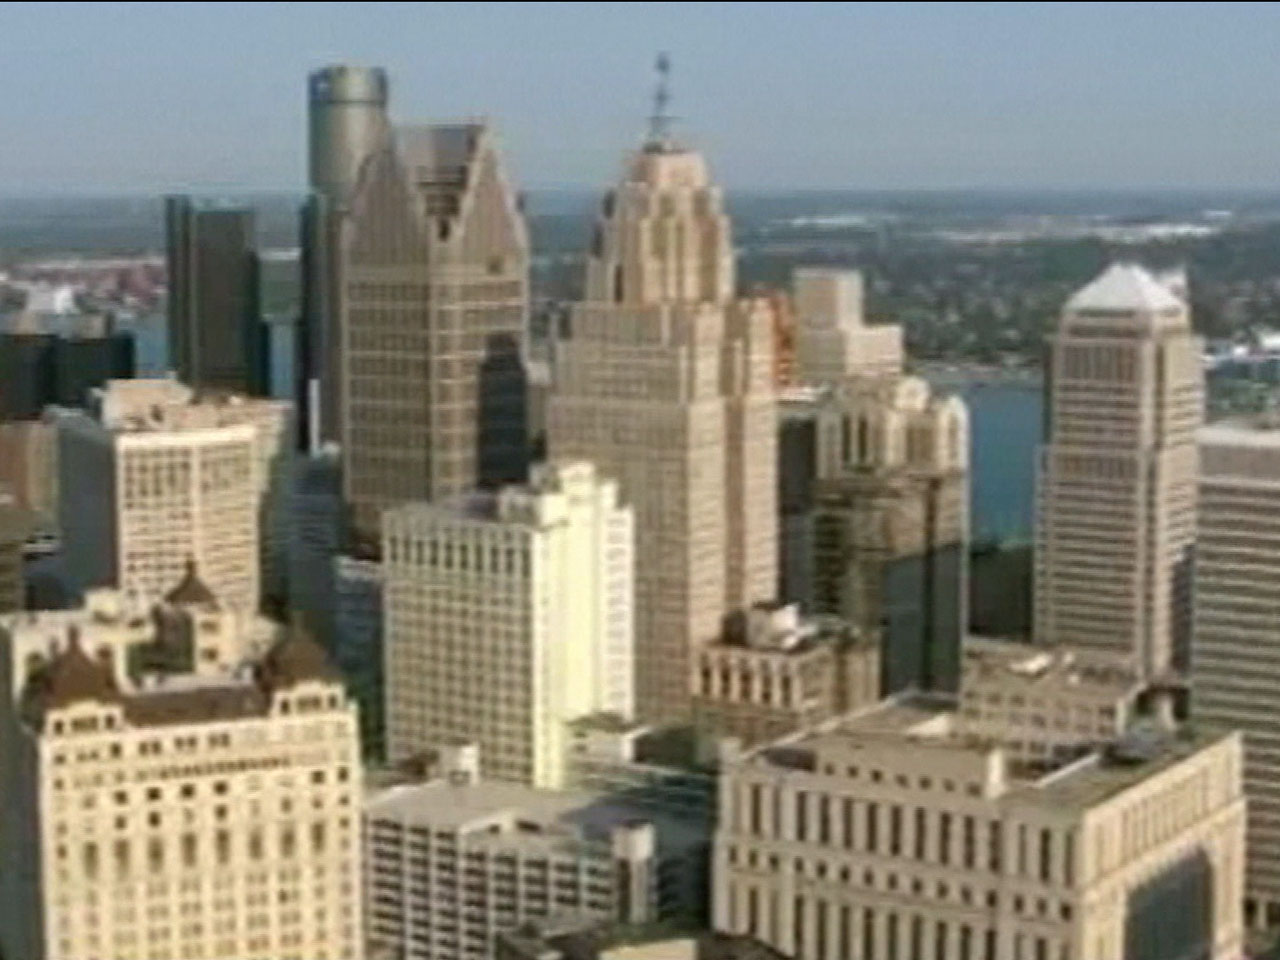 Why is detroit in an economic crisis?